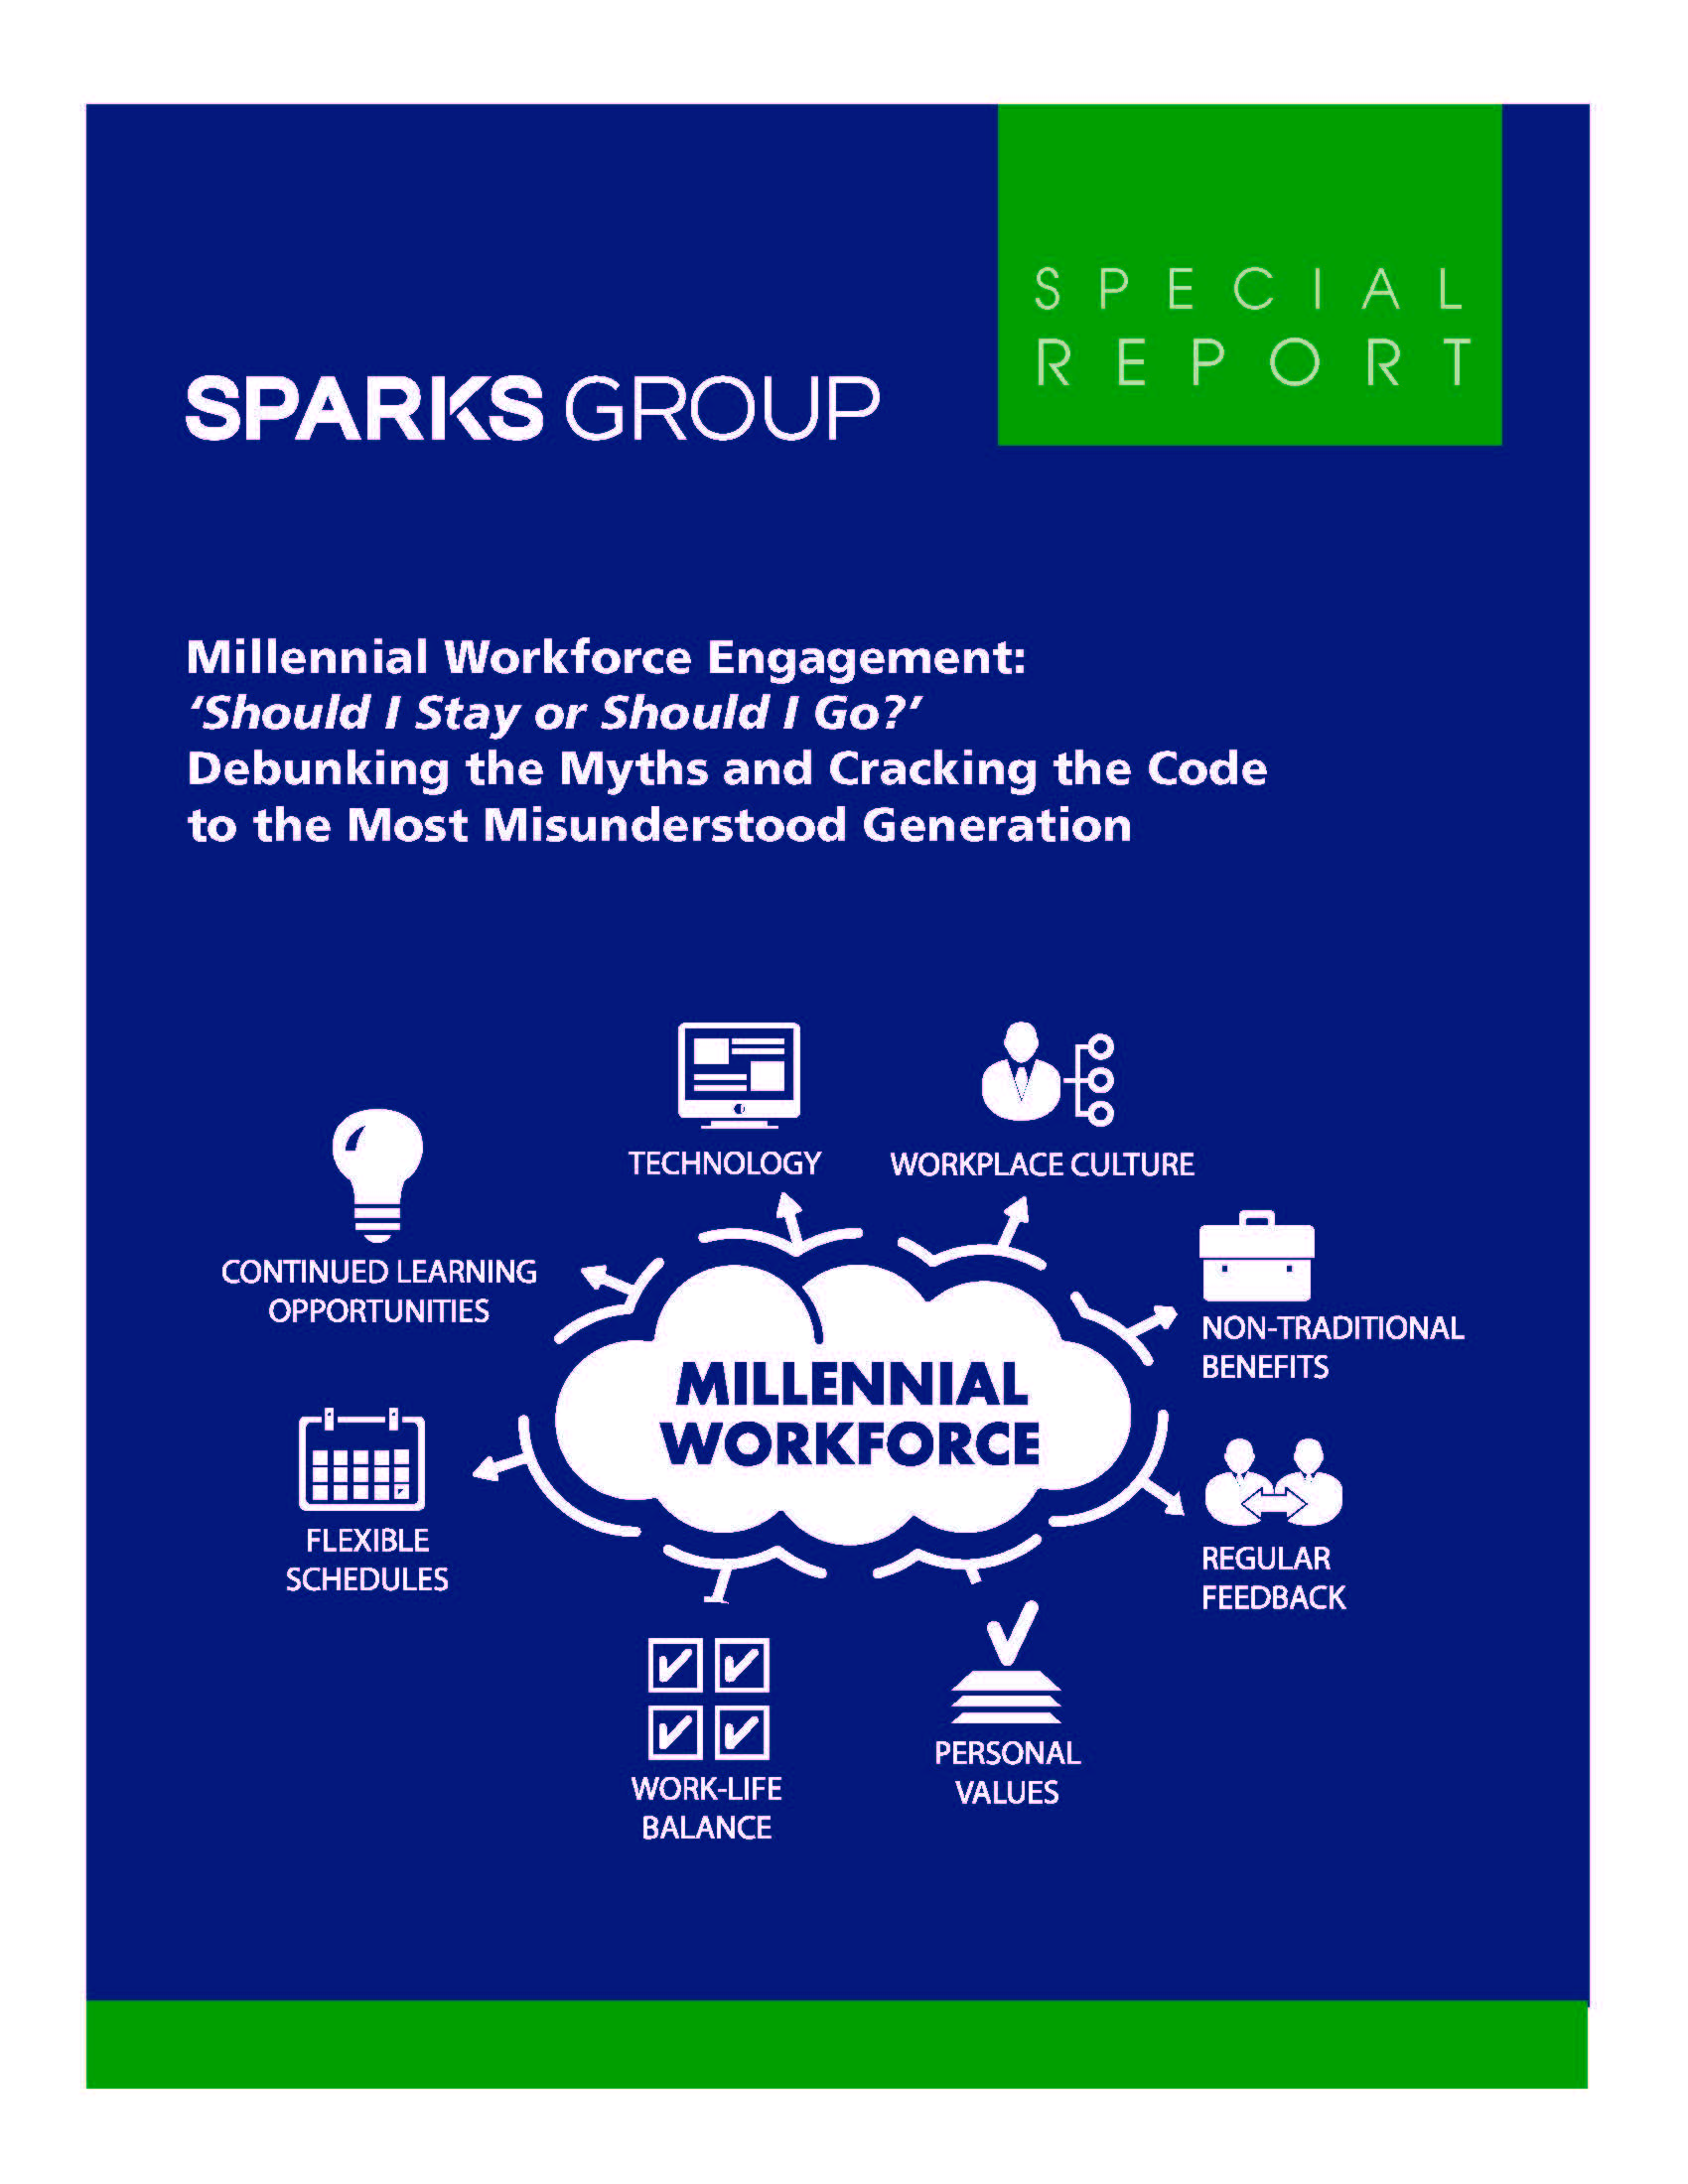 Millennial Workforce Engagement: Debunking the myths and Cracking the Code to the Most Misunderstood Generation (eBook)